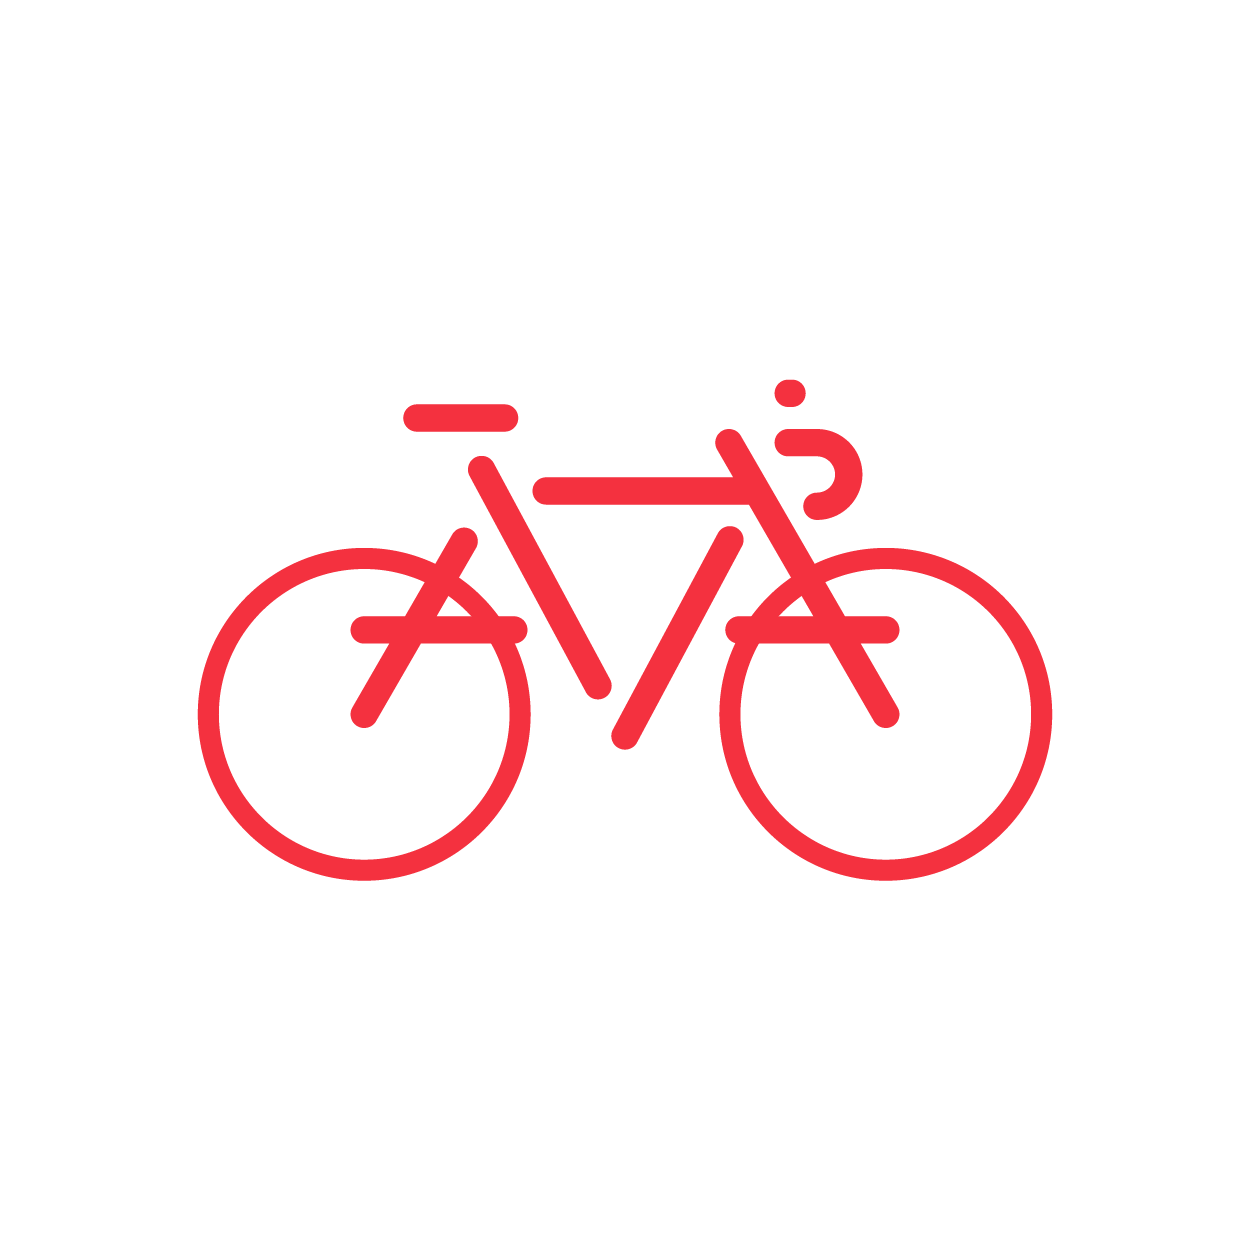 bikes-01.png